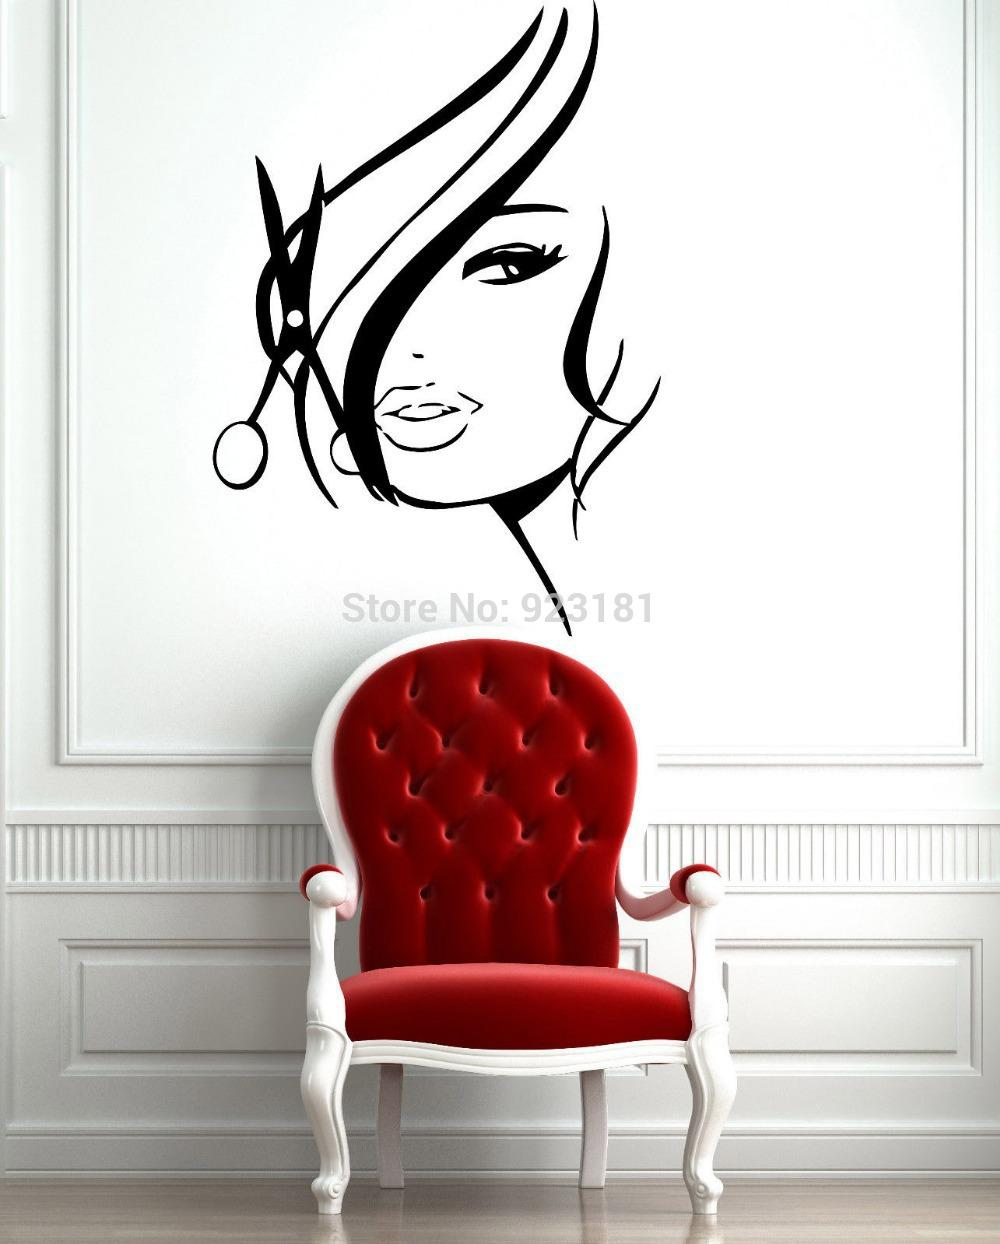 awesome 30 hair salon wall art design inspiration of best 25 beauty salon decor ideas on. Black Bedroom Furniture Sets. Home Design Ideas